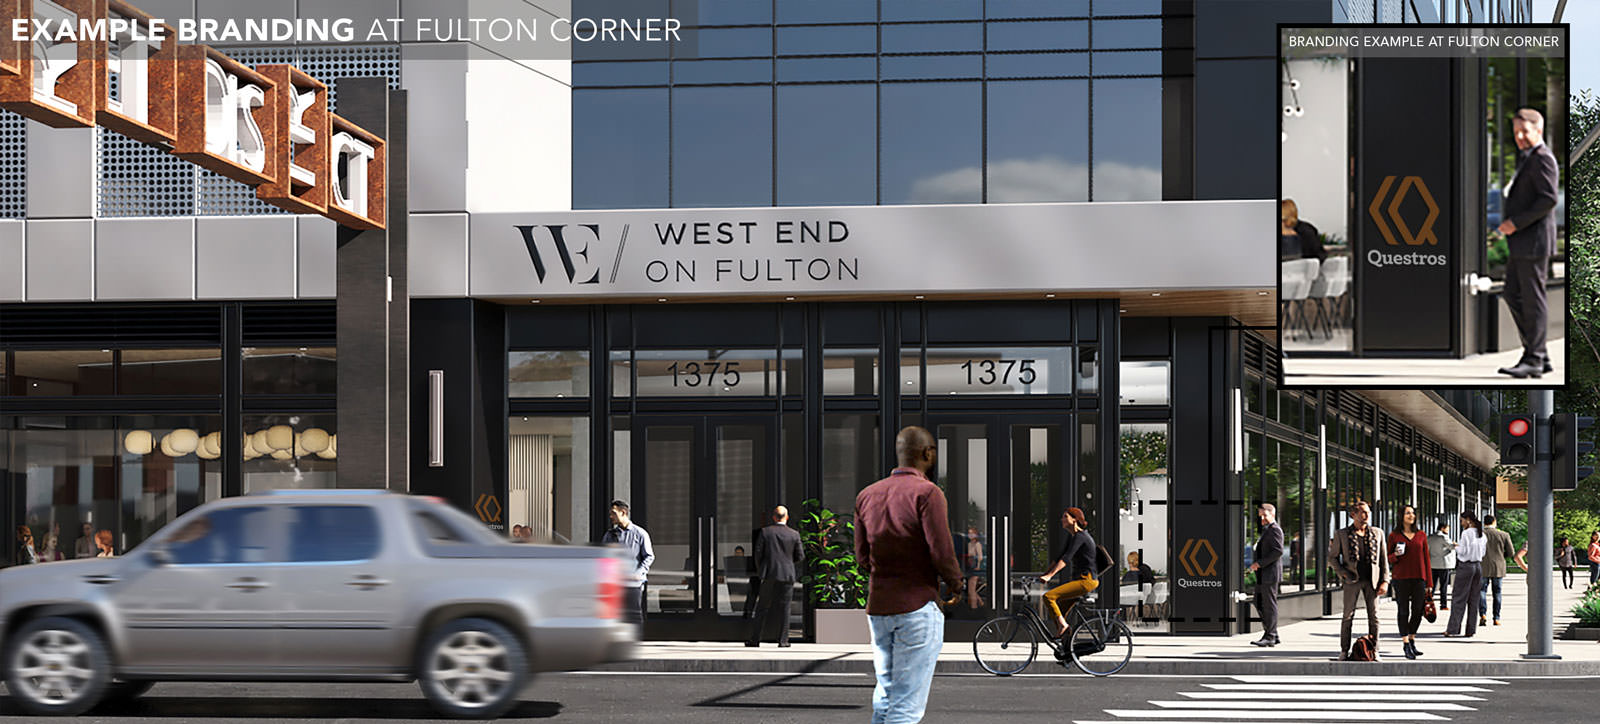 west-end-on-fulton-branding-opportunity_5